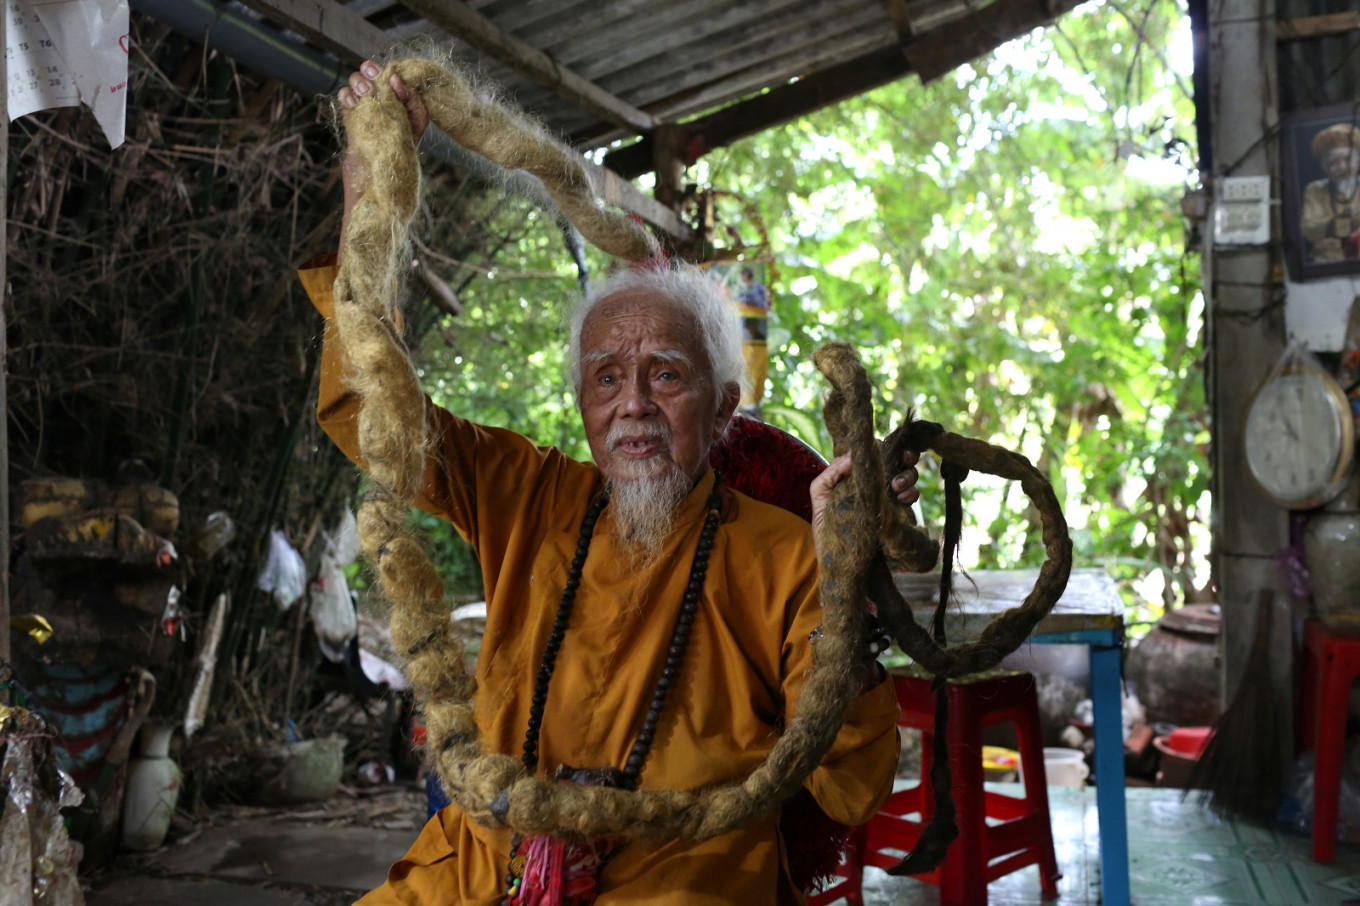 Vietnameseman with 5-meter hair says lifelong grow-out is divine calling